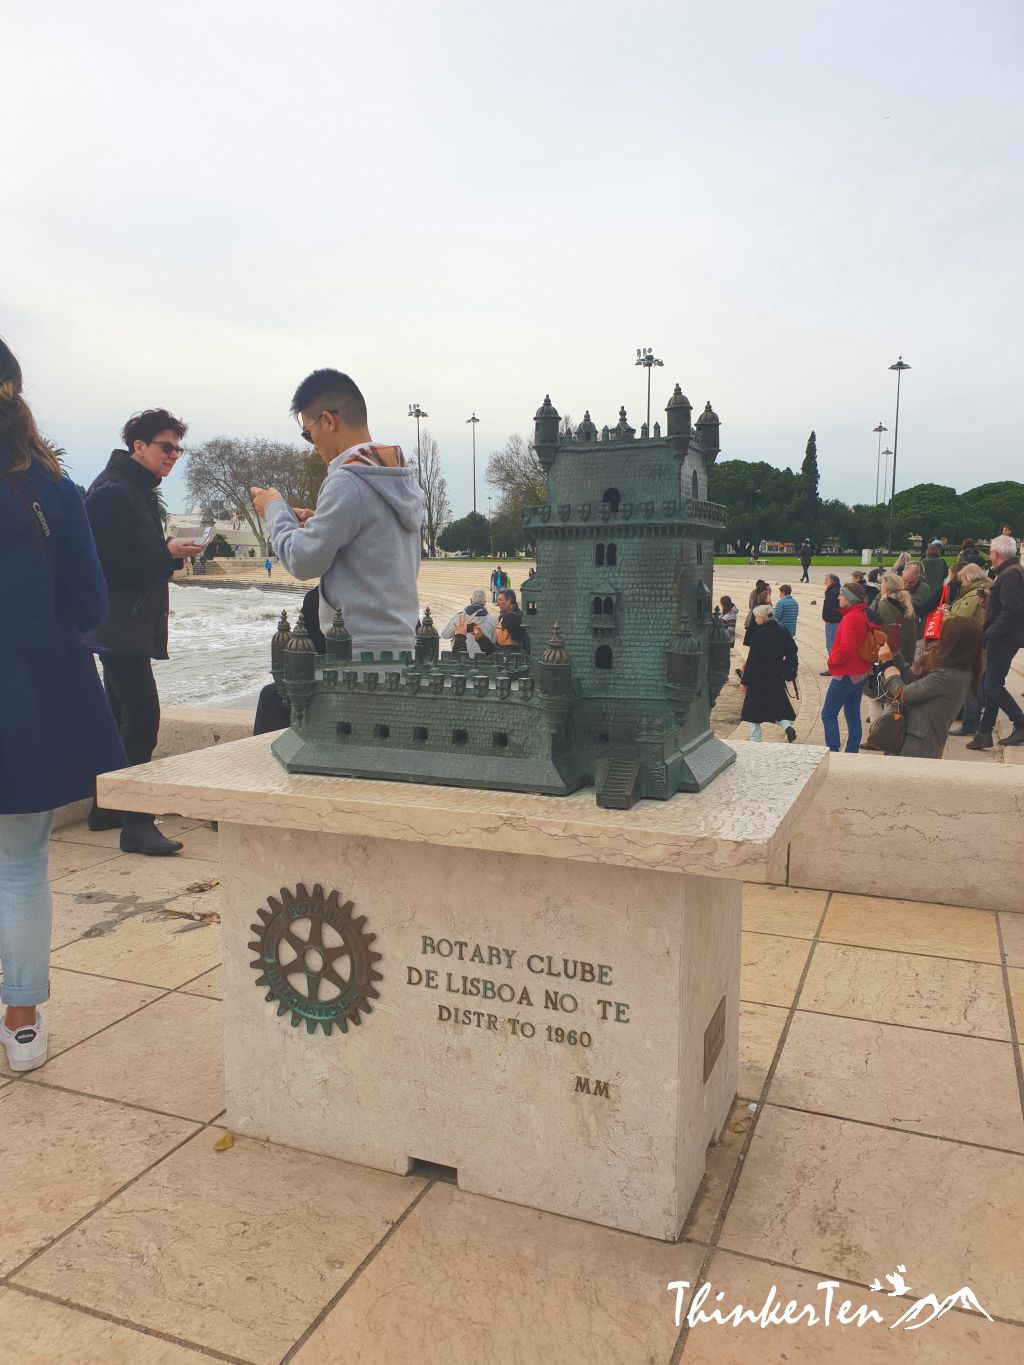 Portugal Lisbon : Learn about Portuguese Sea Power Through Belem Tower & Monument to the Discoveries